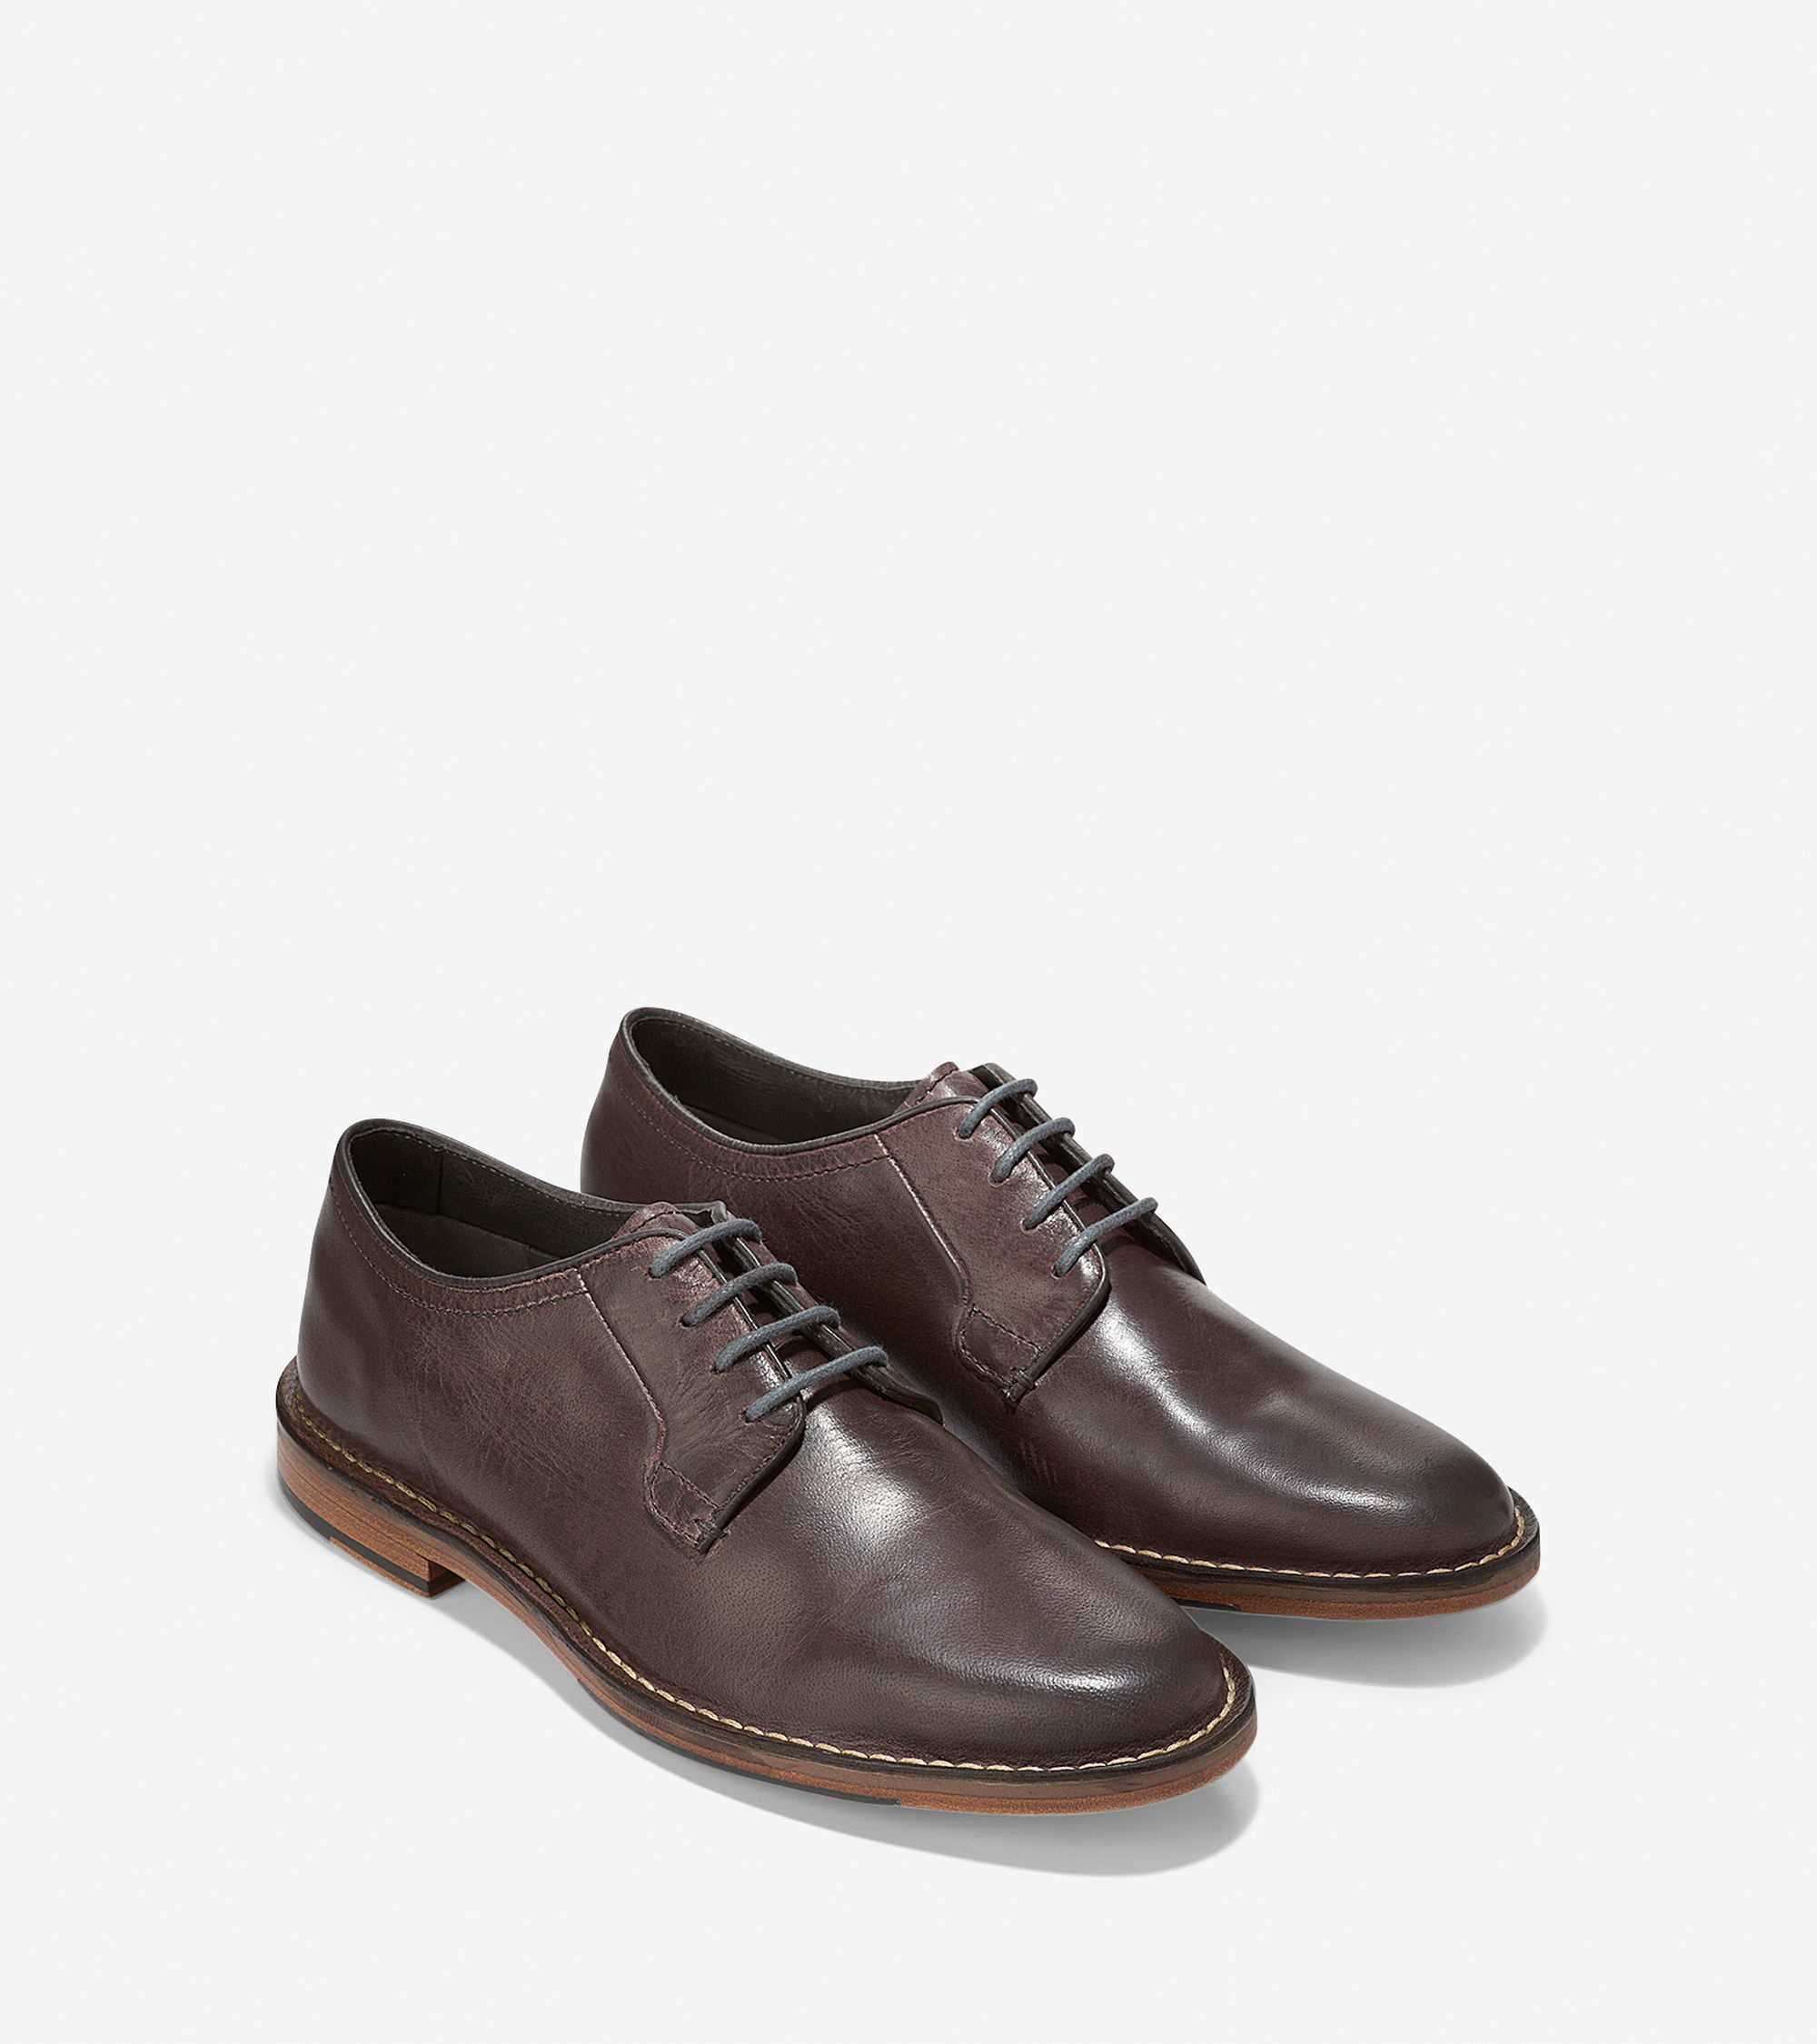 Cole Haan Shoes On Sale Free Shipping